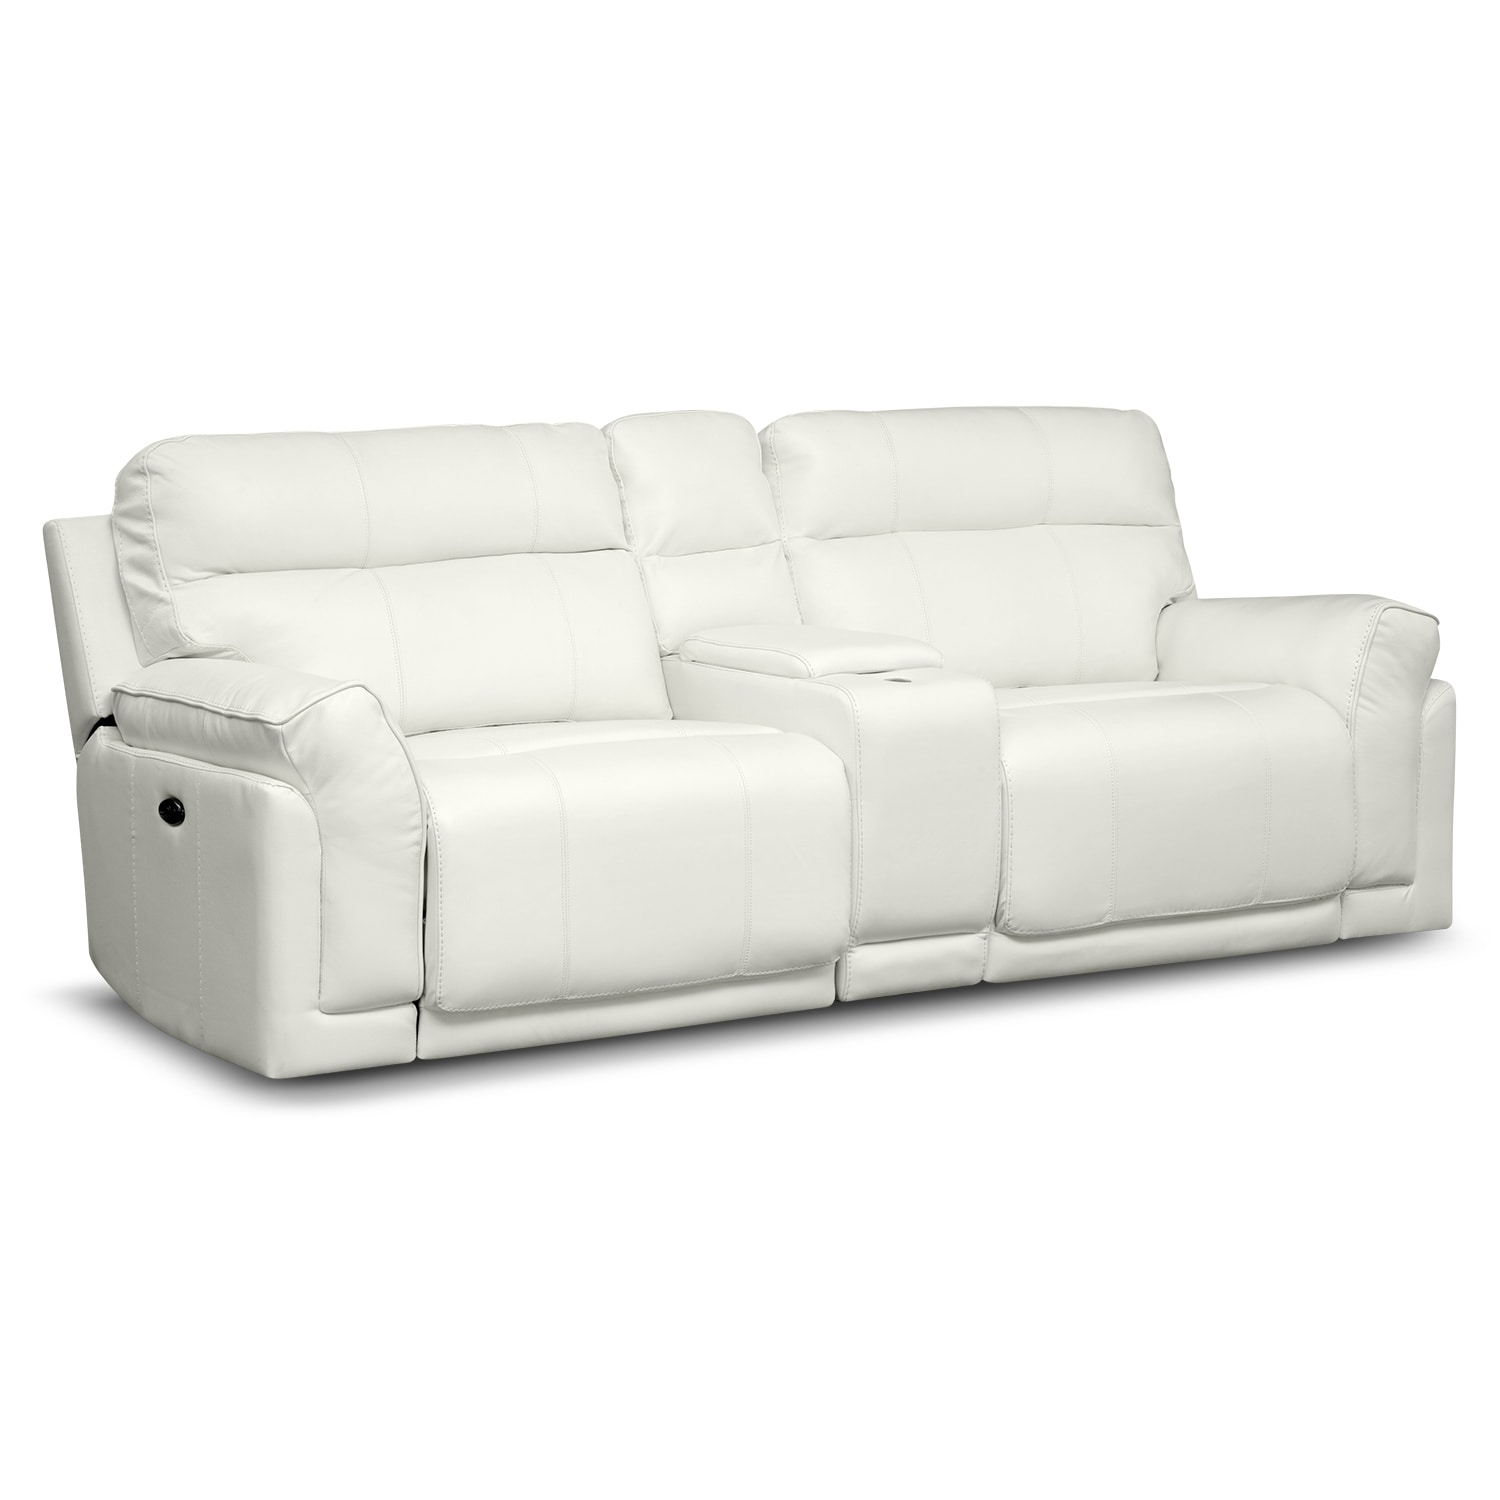 Antonio white leather power reclining sofa with console Power reclining sofas and loveseats